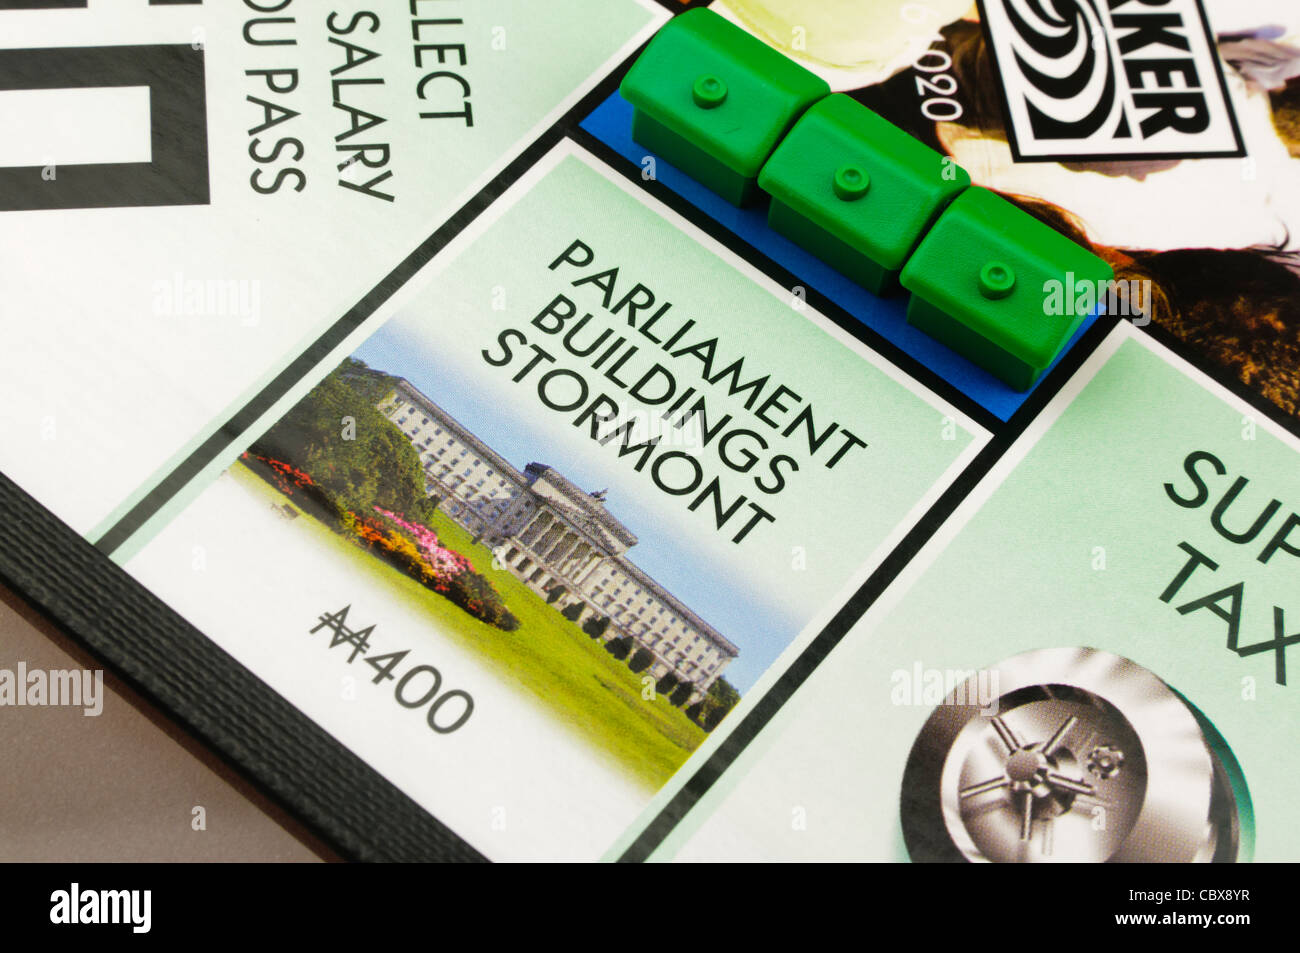 Belfast Monopoly: Building houses on Parliament Buildings - Stock Image